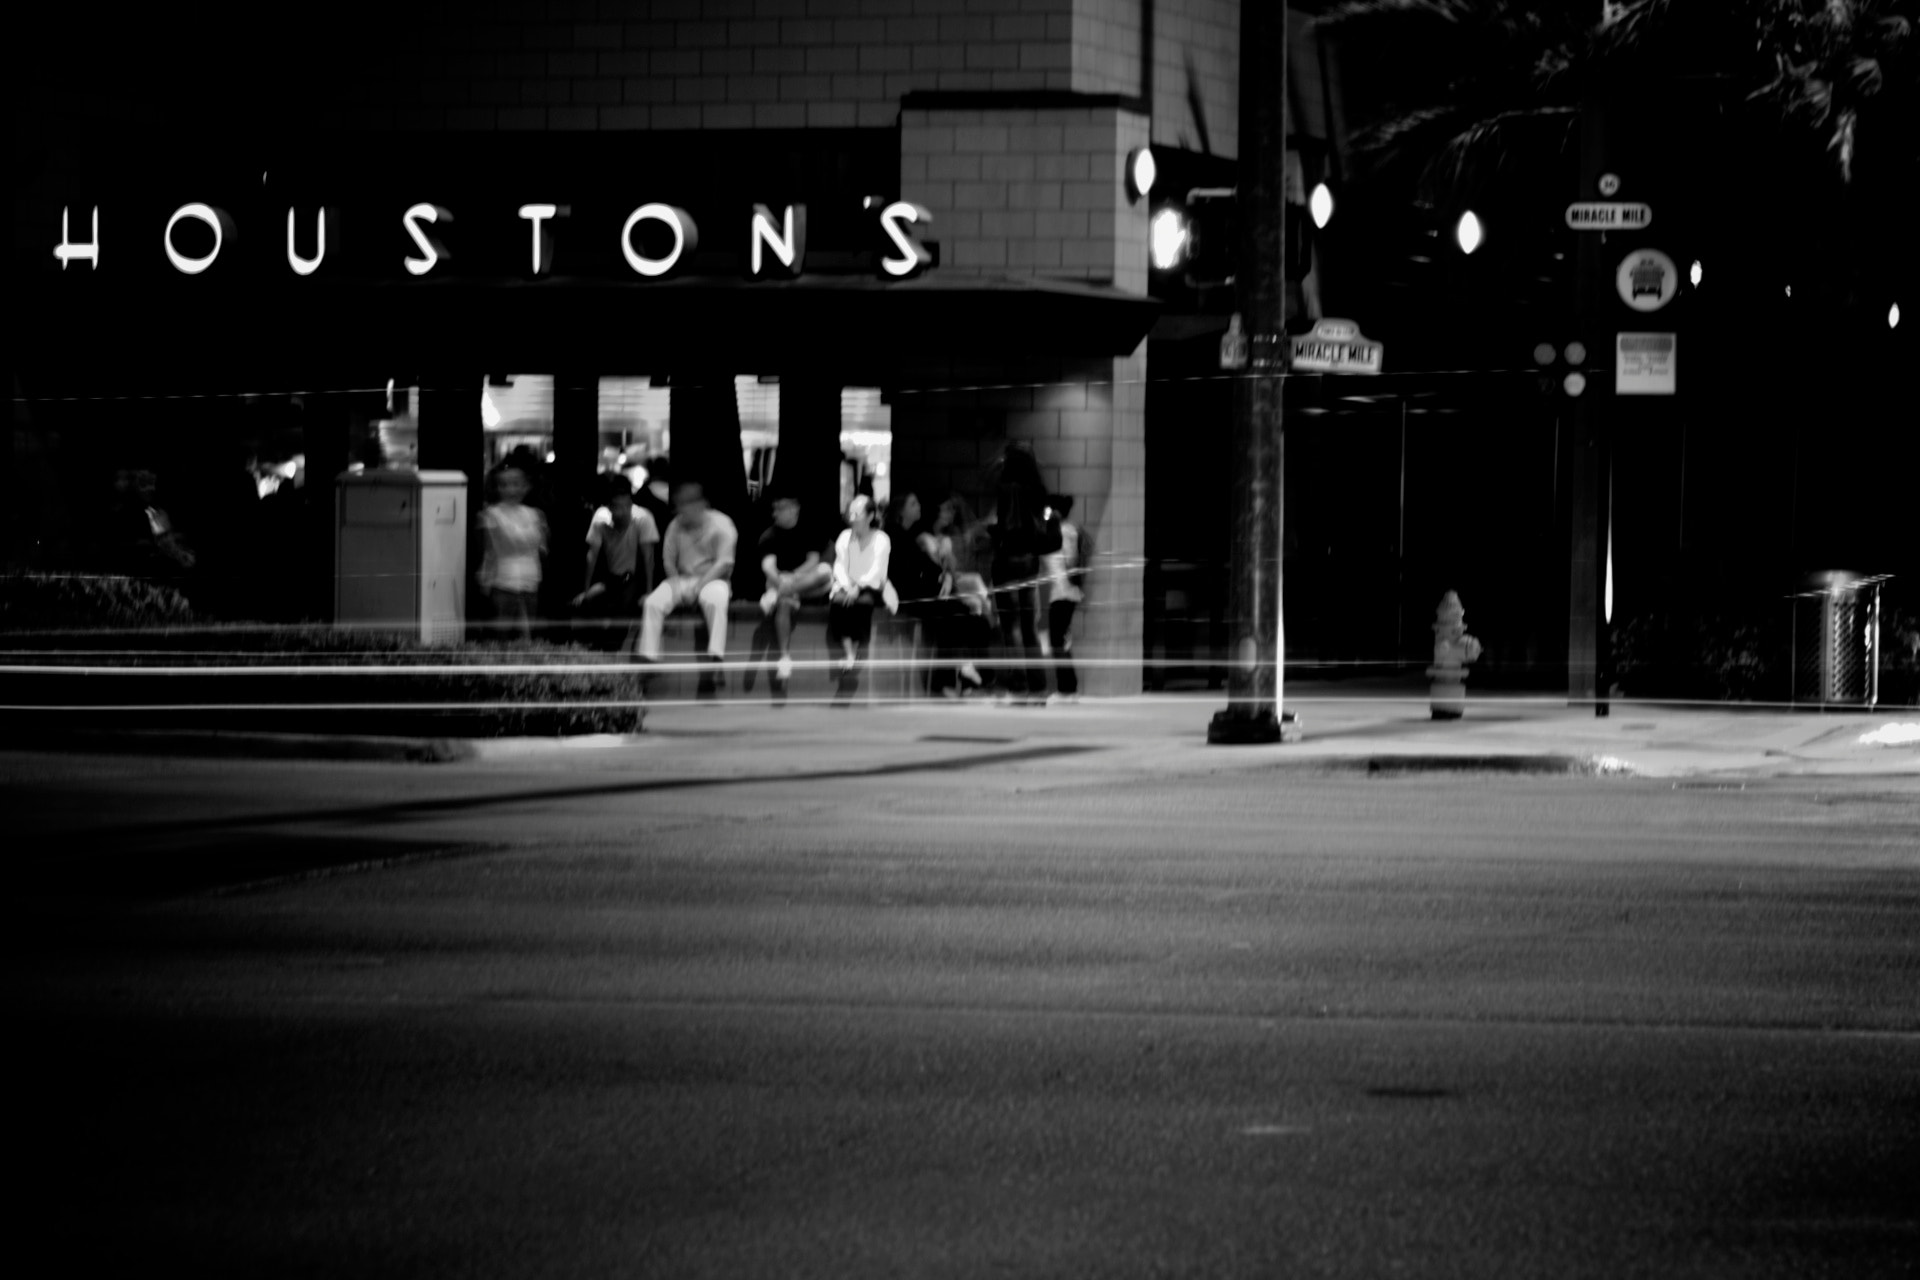 Photograph Houstons by KaL MichaeL on 500px